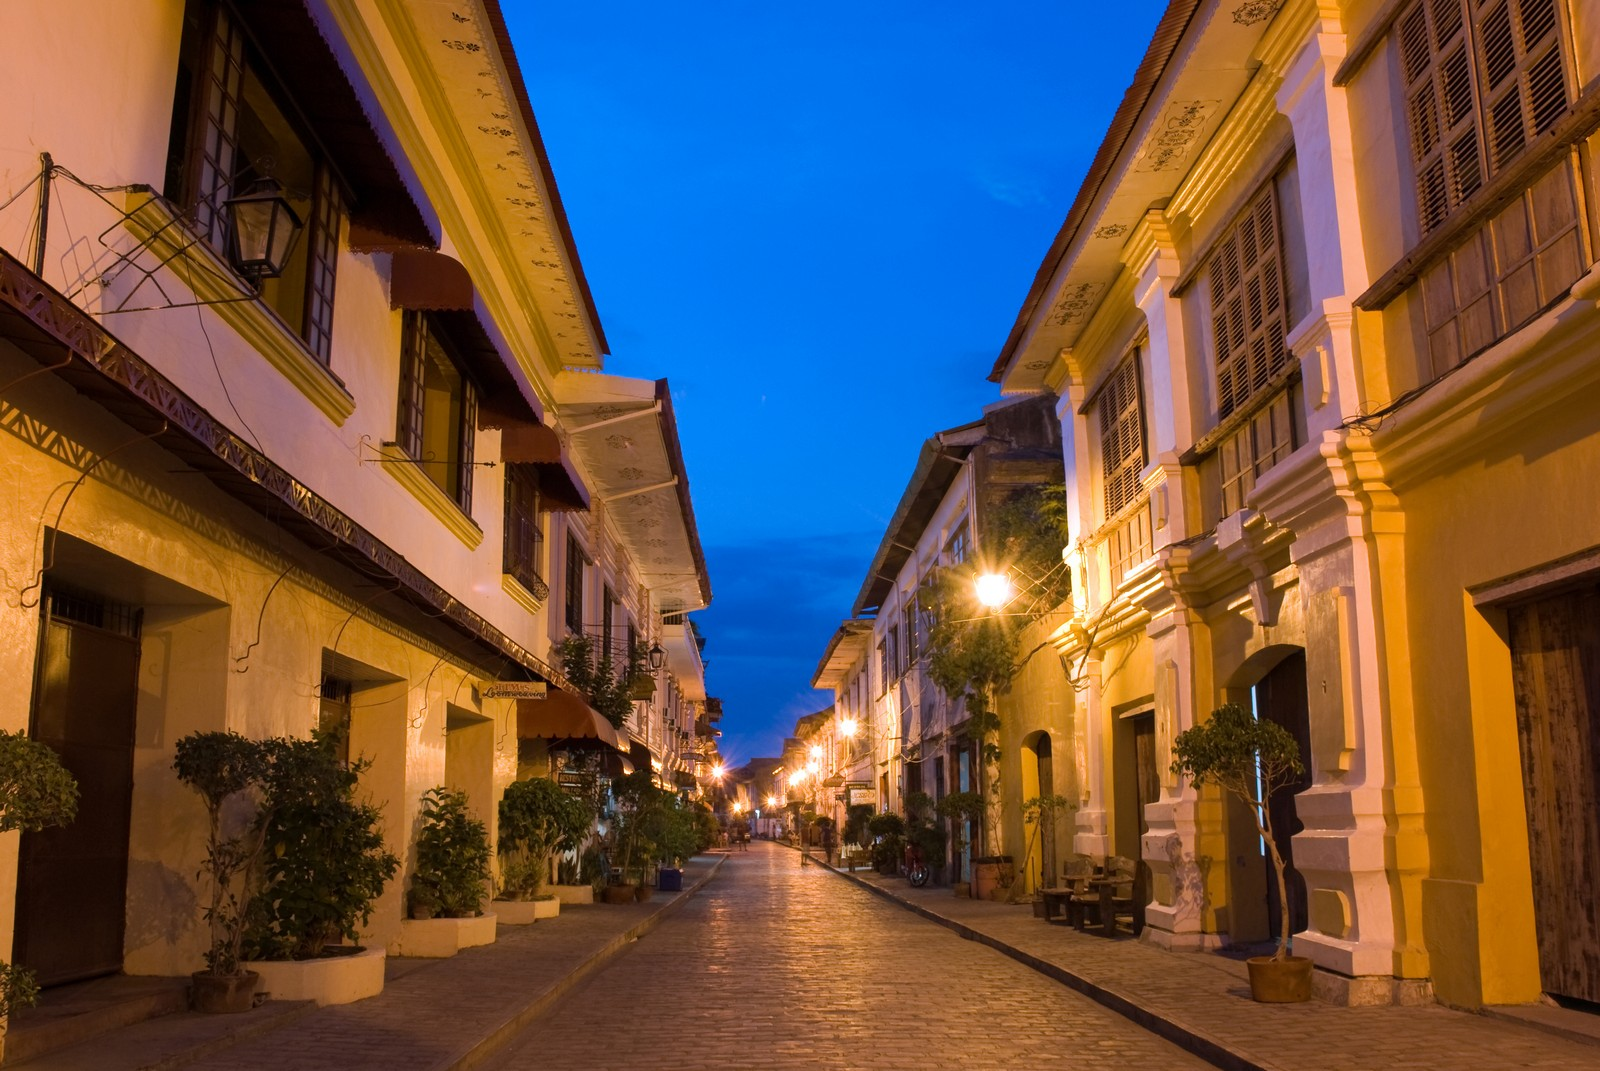 Lit up streets of Calle Crisologo at night